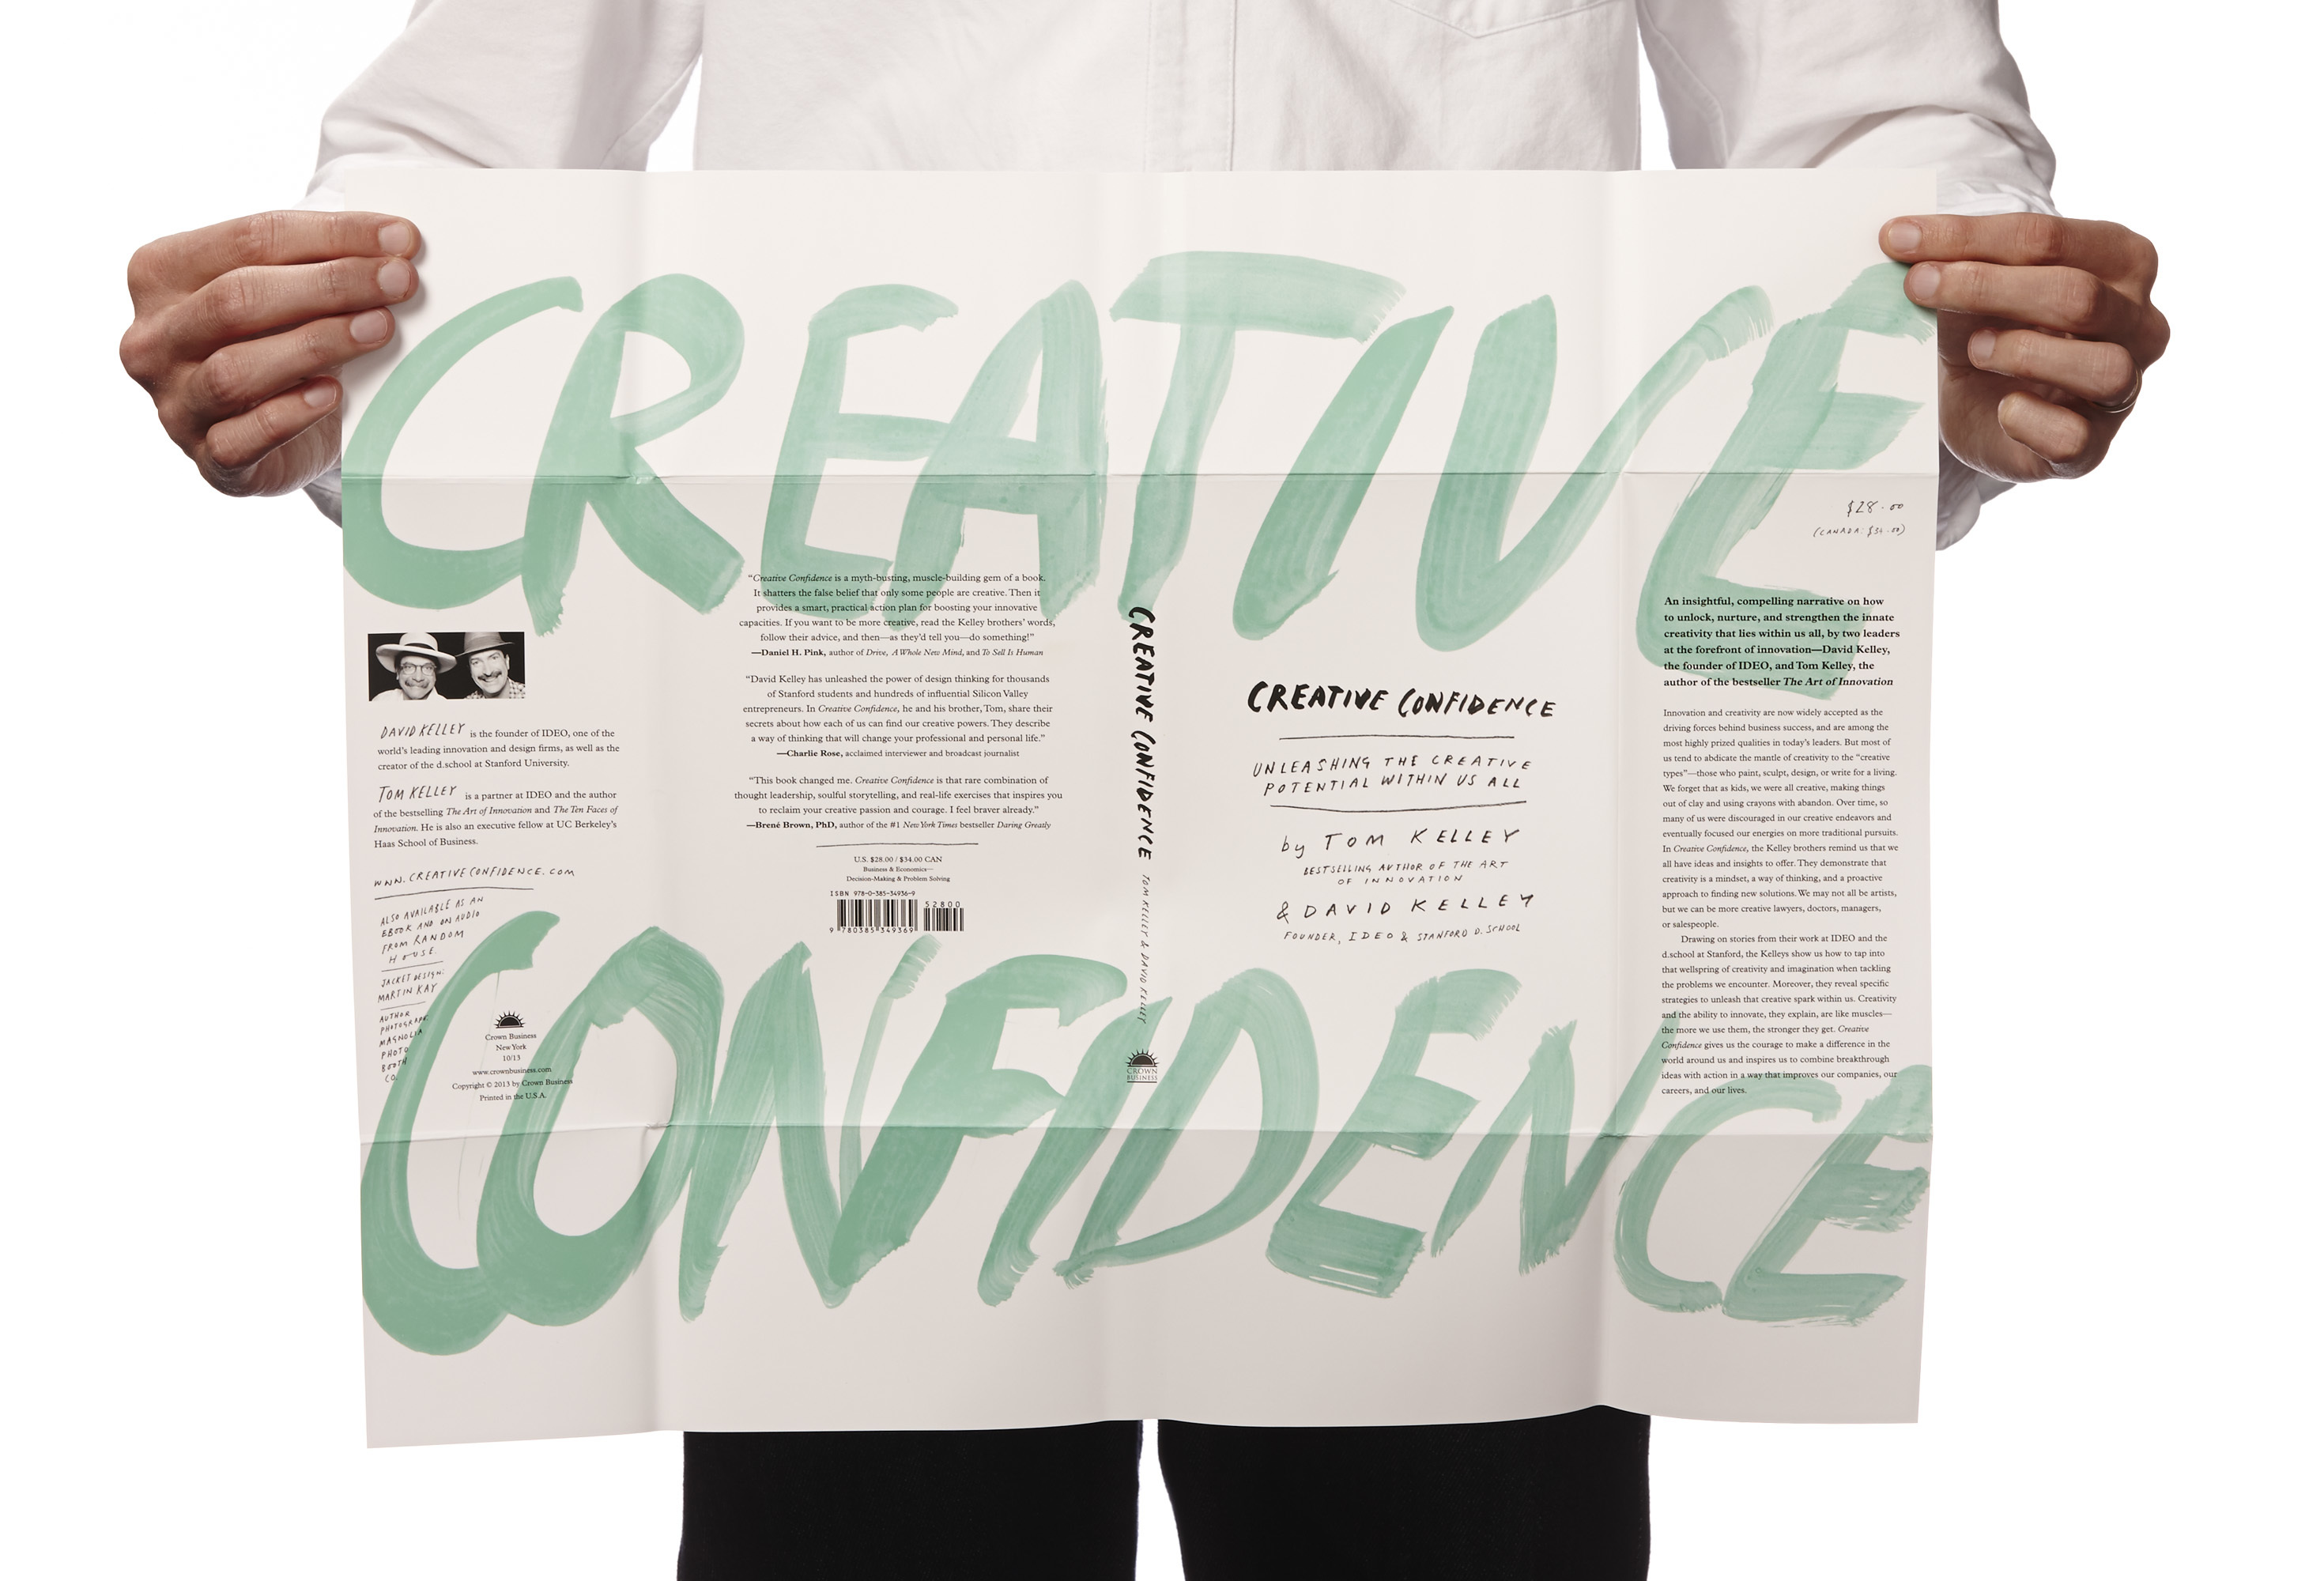 Creative Confidence book sleeve in hands